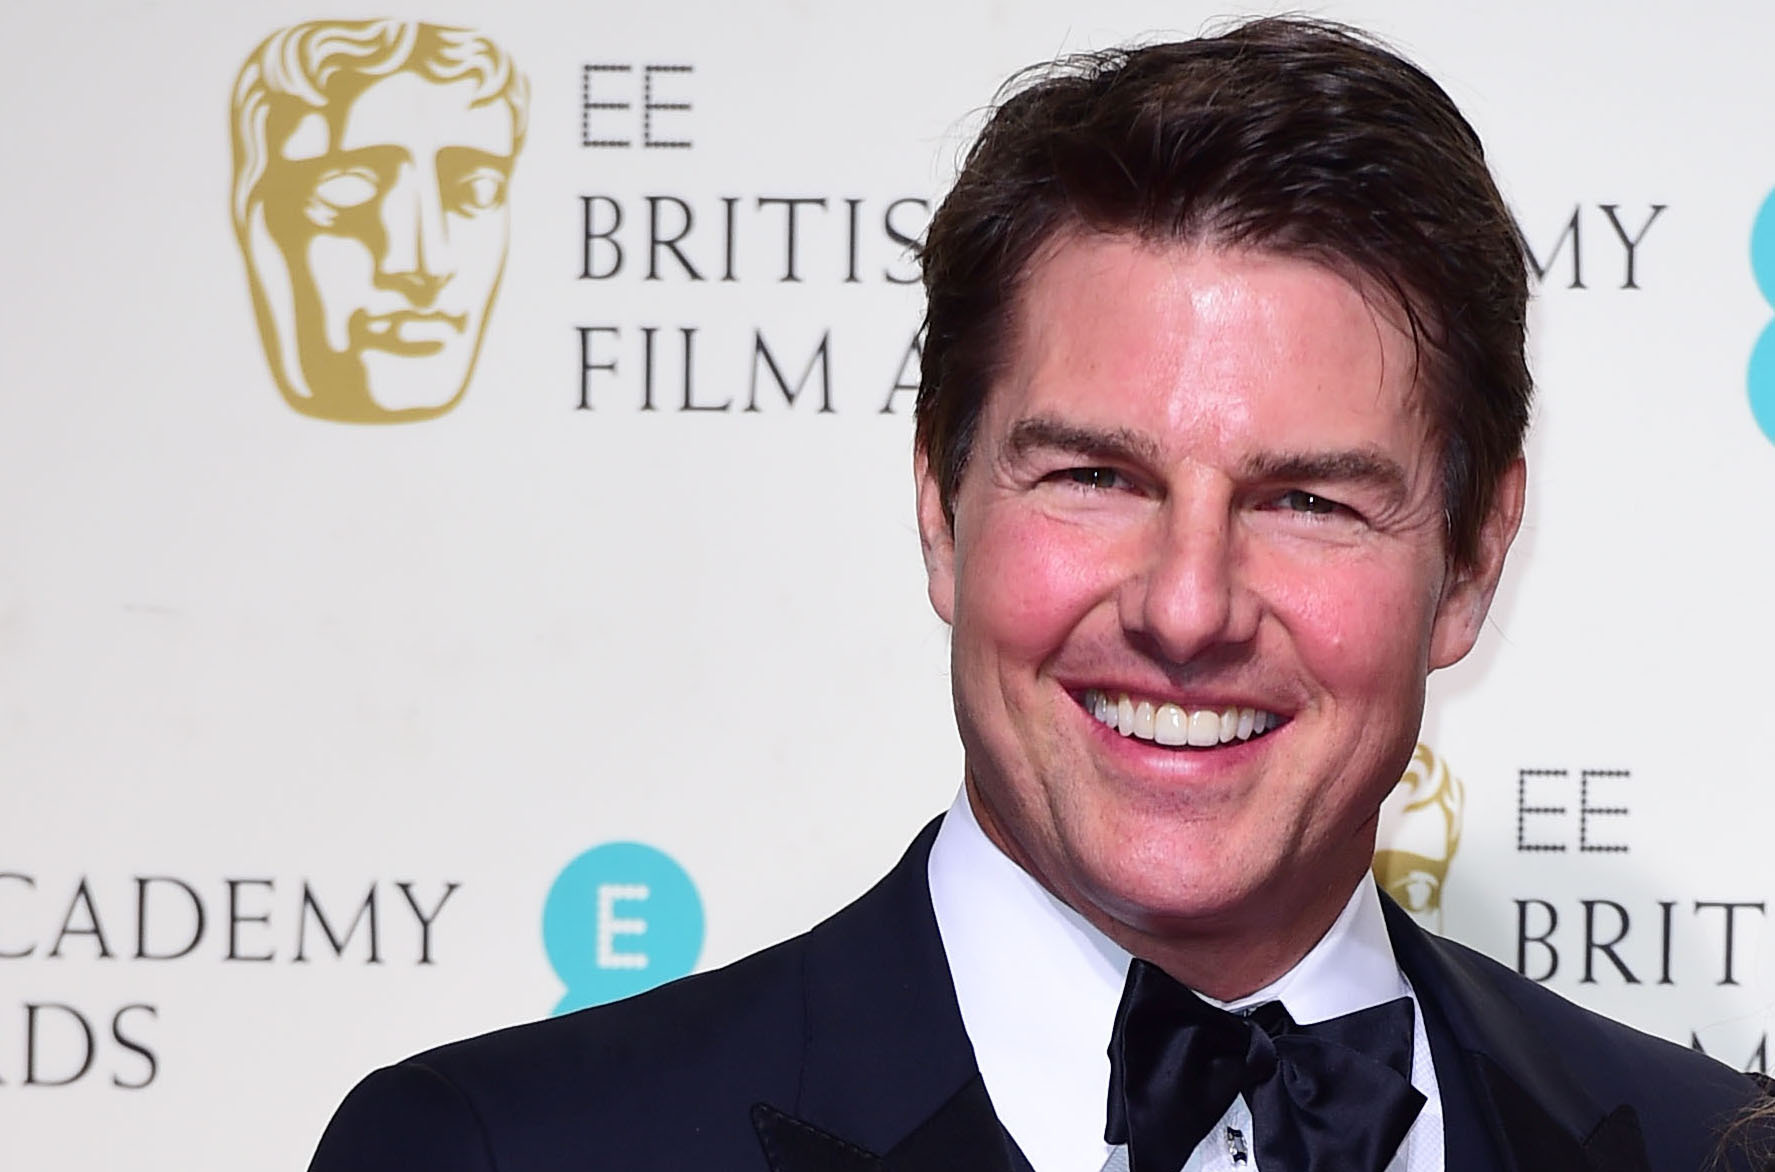 Tom Cruise at the Baftas